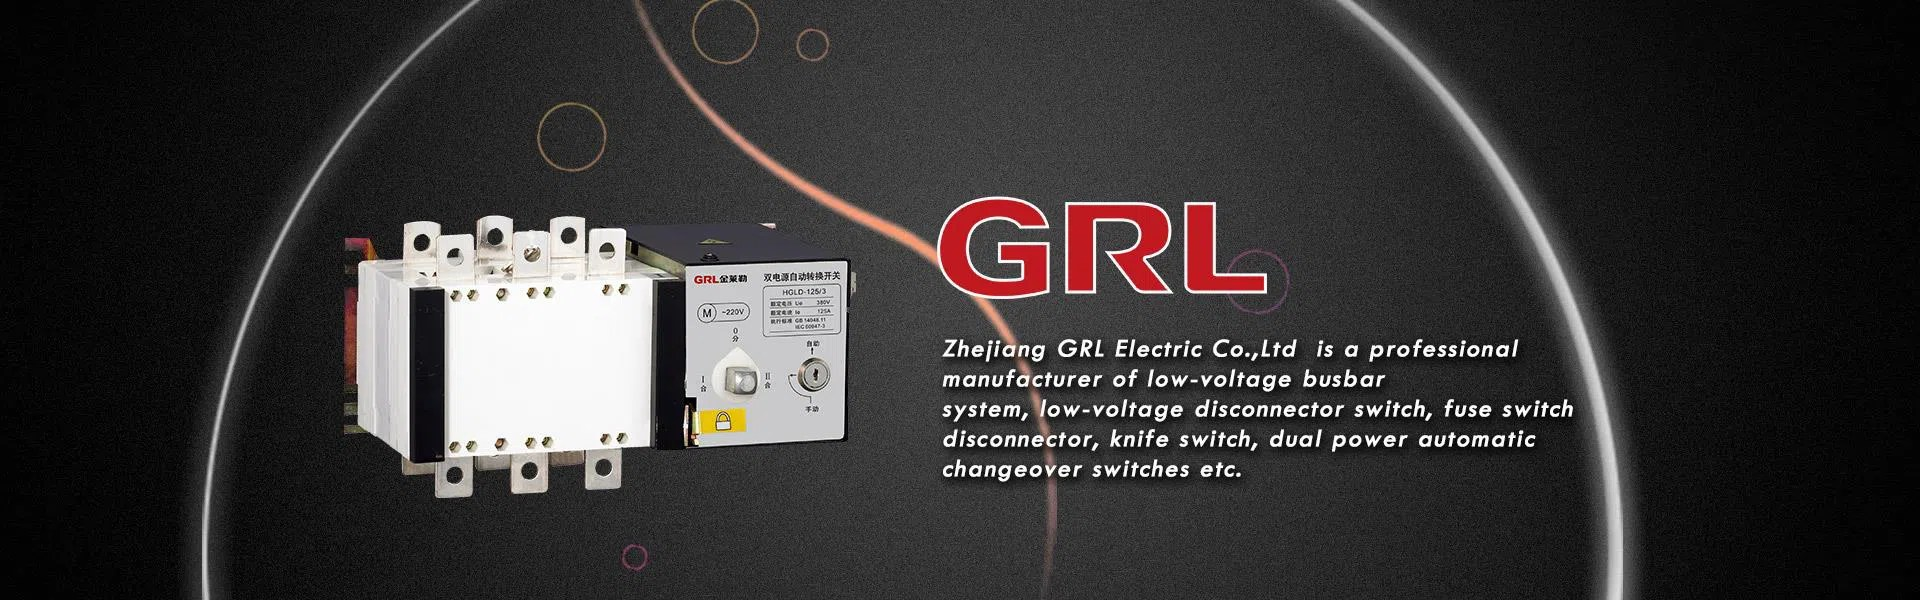 hight resolution of china distribution box suppliers factory buy customized distribution box quotation grl electric